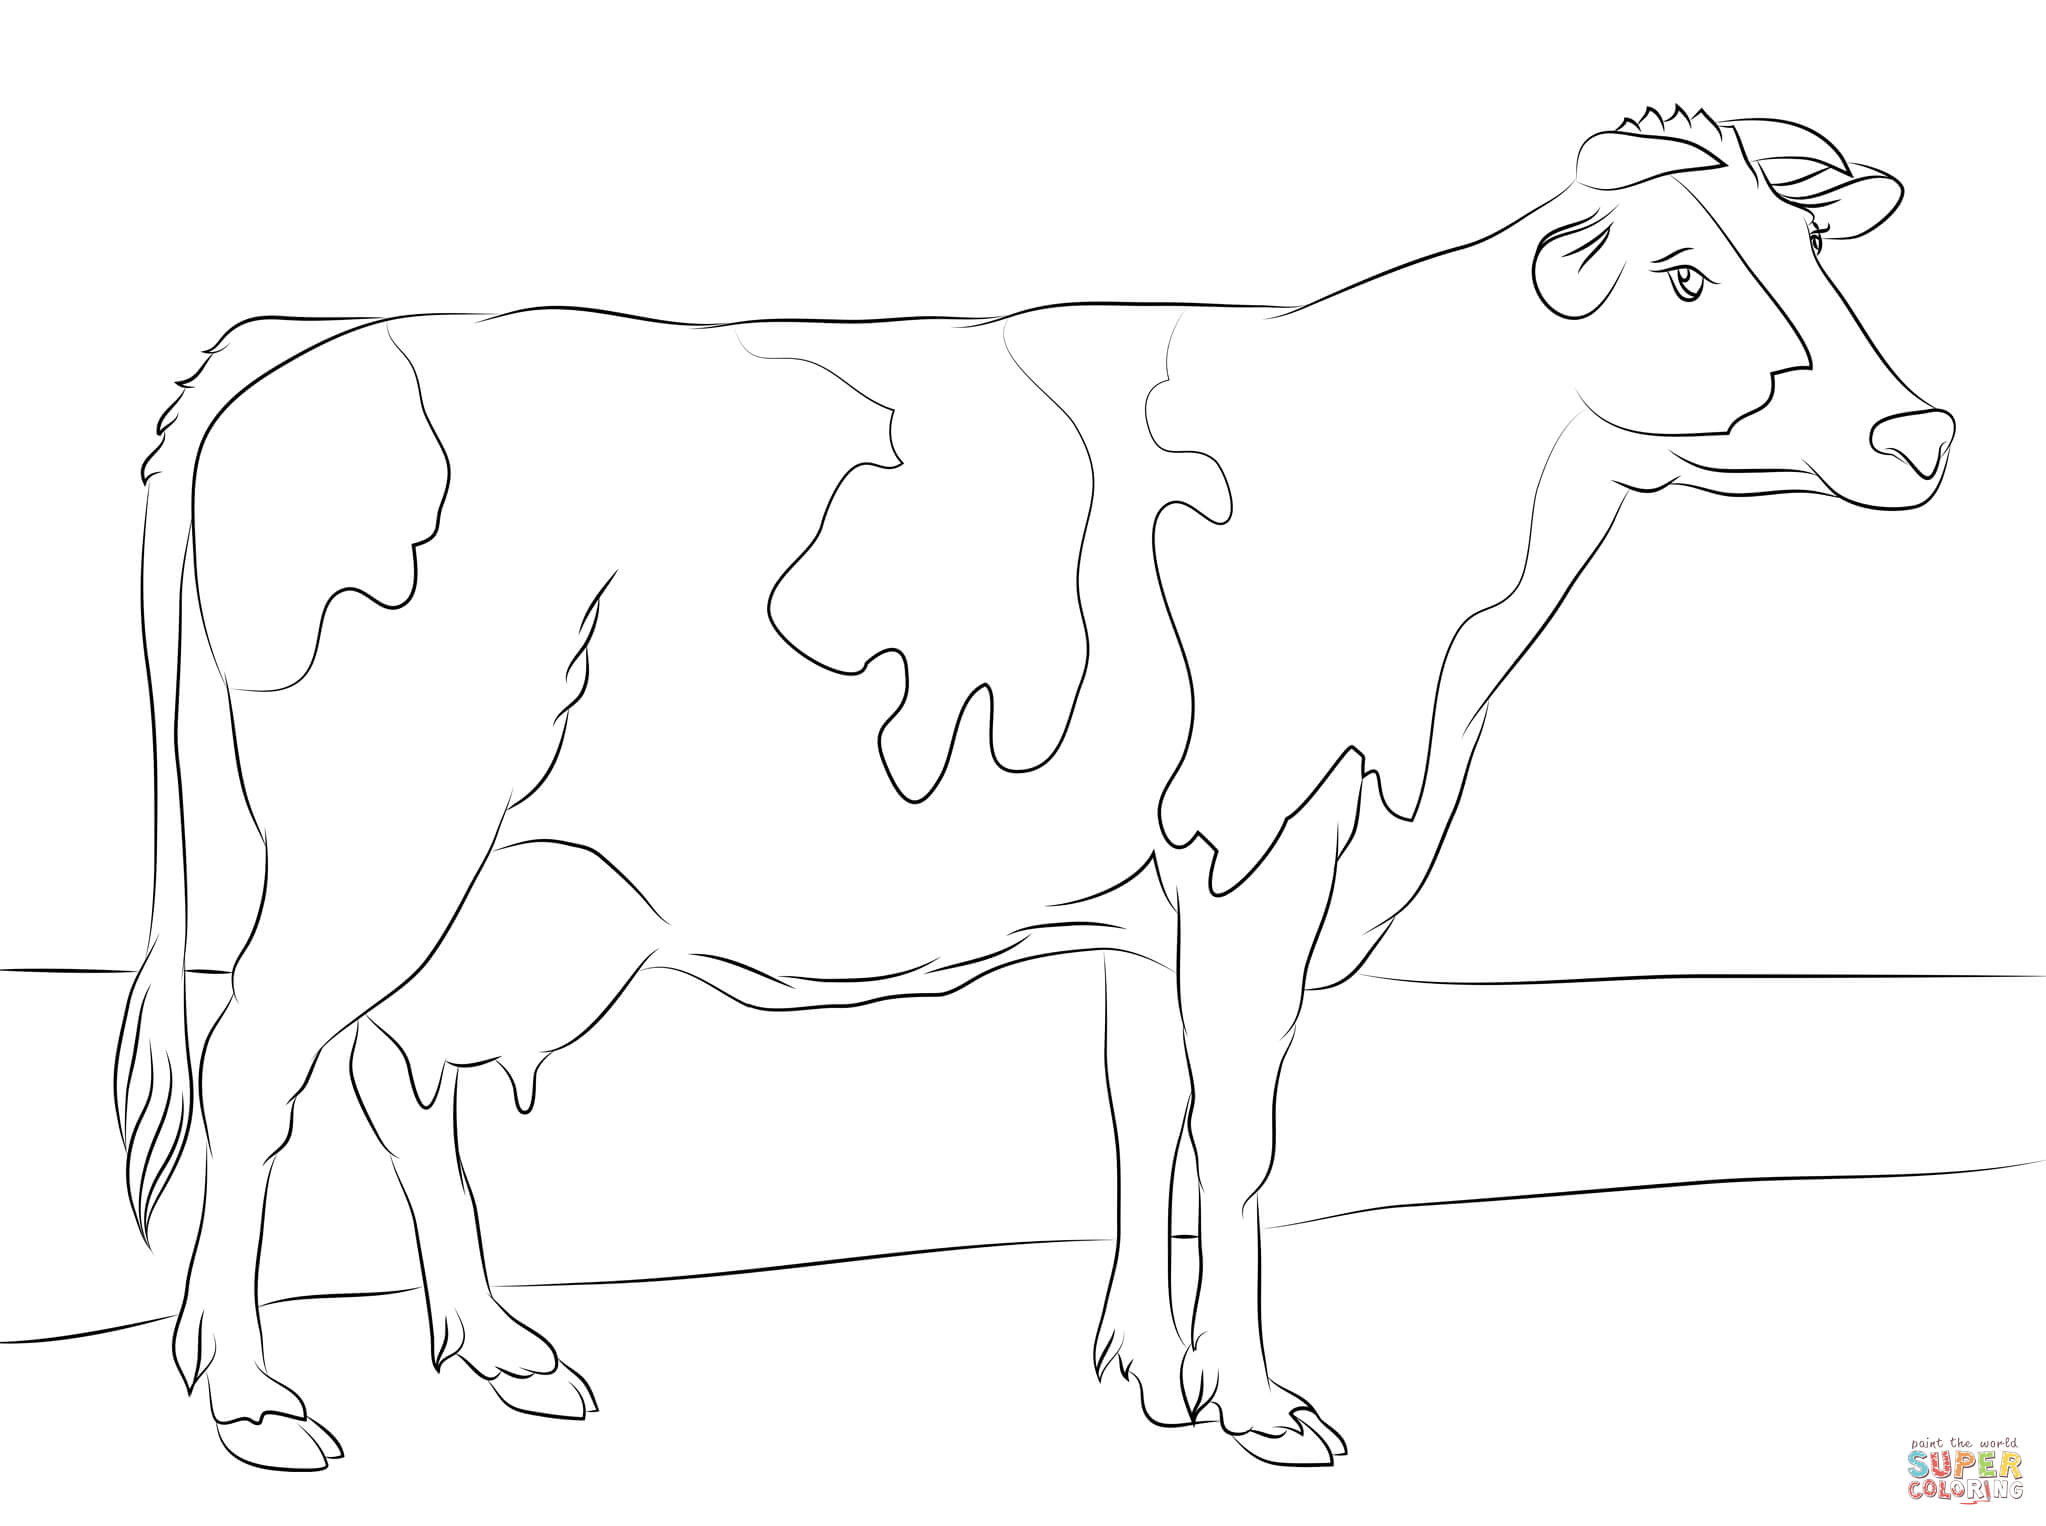 Holstein Cow Coloring Page | Free Printable Coloring Pages - Coloring Pages Of Cows Free Printable